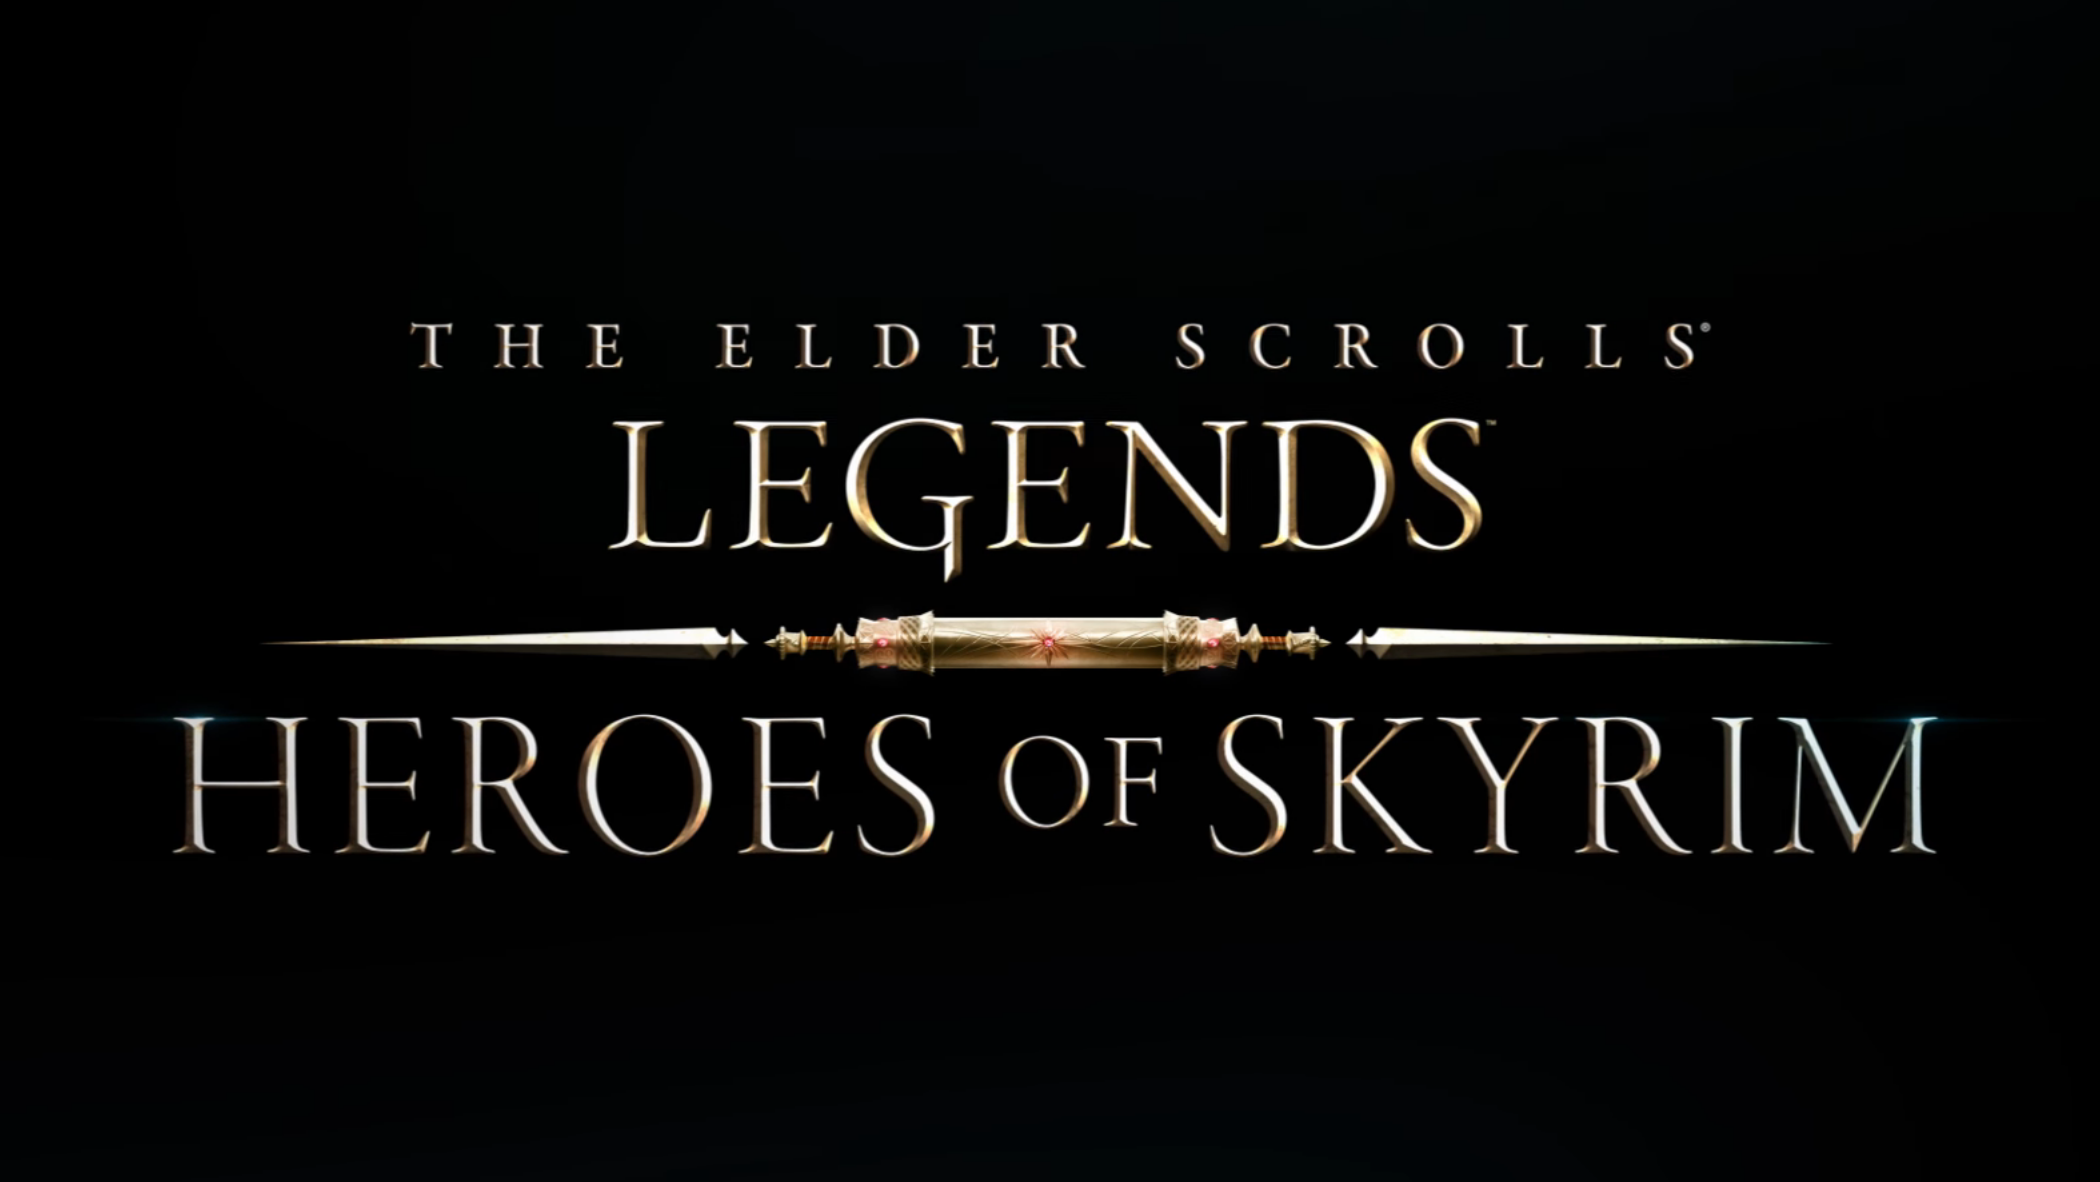 The Elder Scrolls: Legends: Heroes of Skyrim